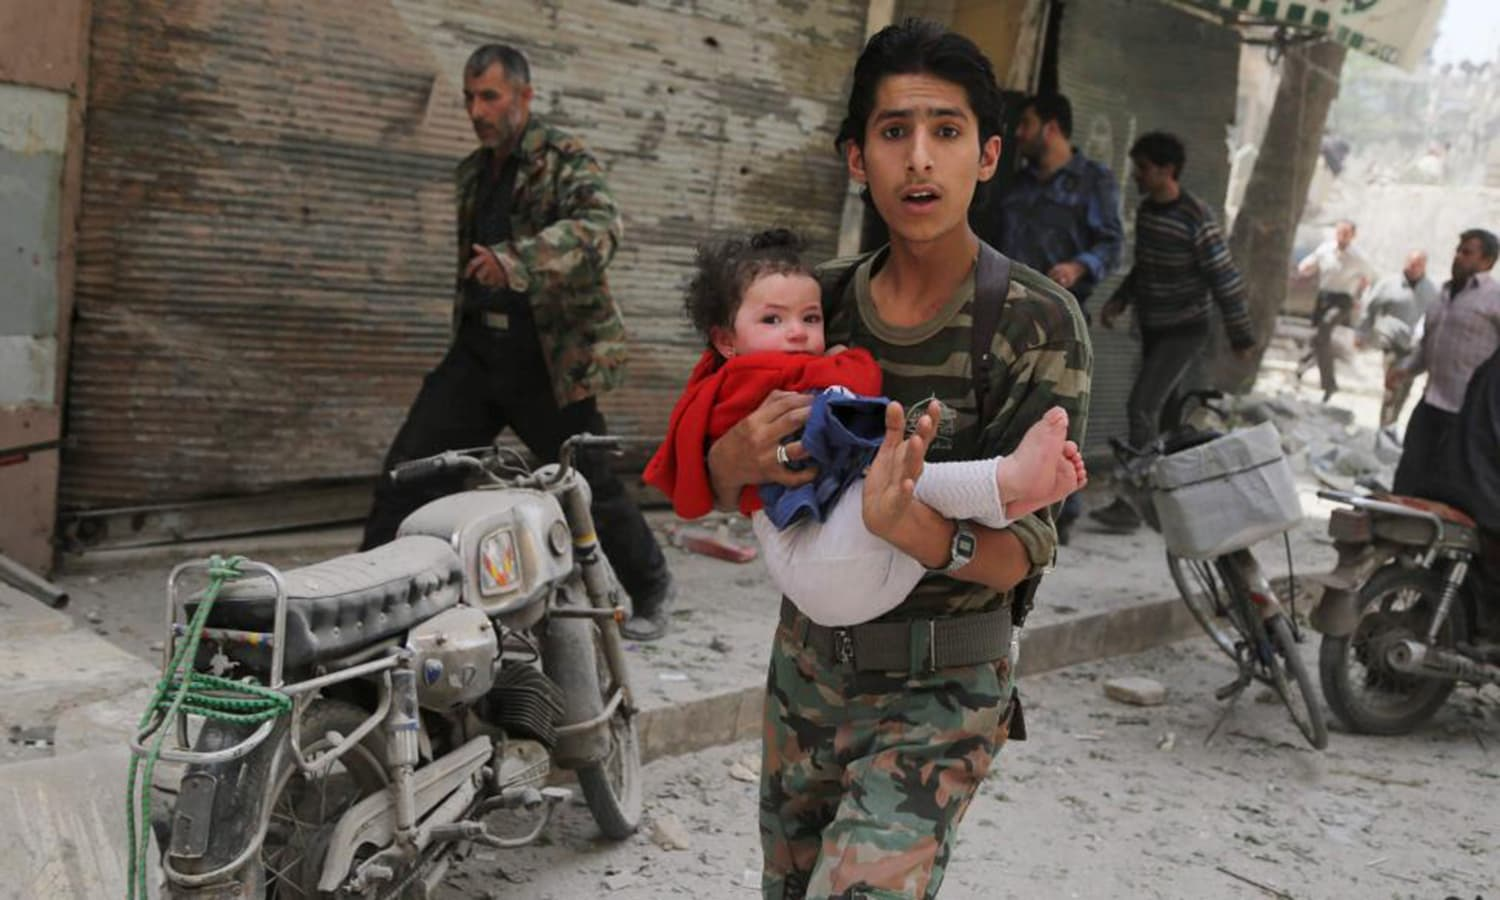 A man carries a child at a site hit by what activists say was a barrel bomb dropped by forces loyal to Syria's President Bashar al-Assad, in al-Kalaseh neighborhood in Aleppo. — Reuters